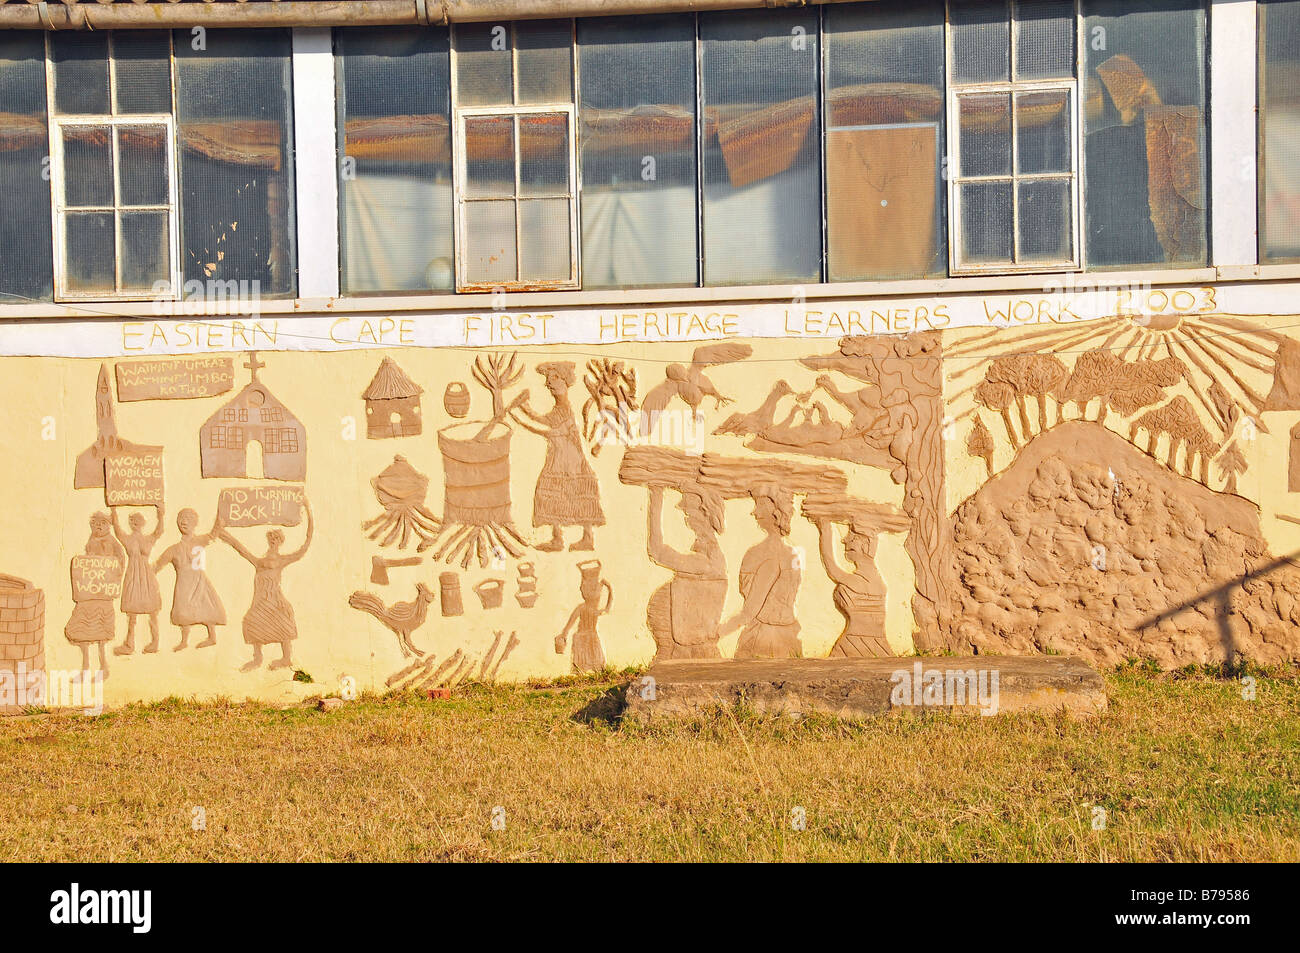 External wall mural (Eastern Cape First Heritage Learners Work 2003 ...